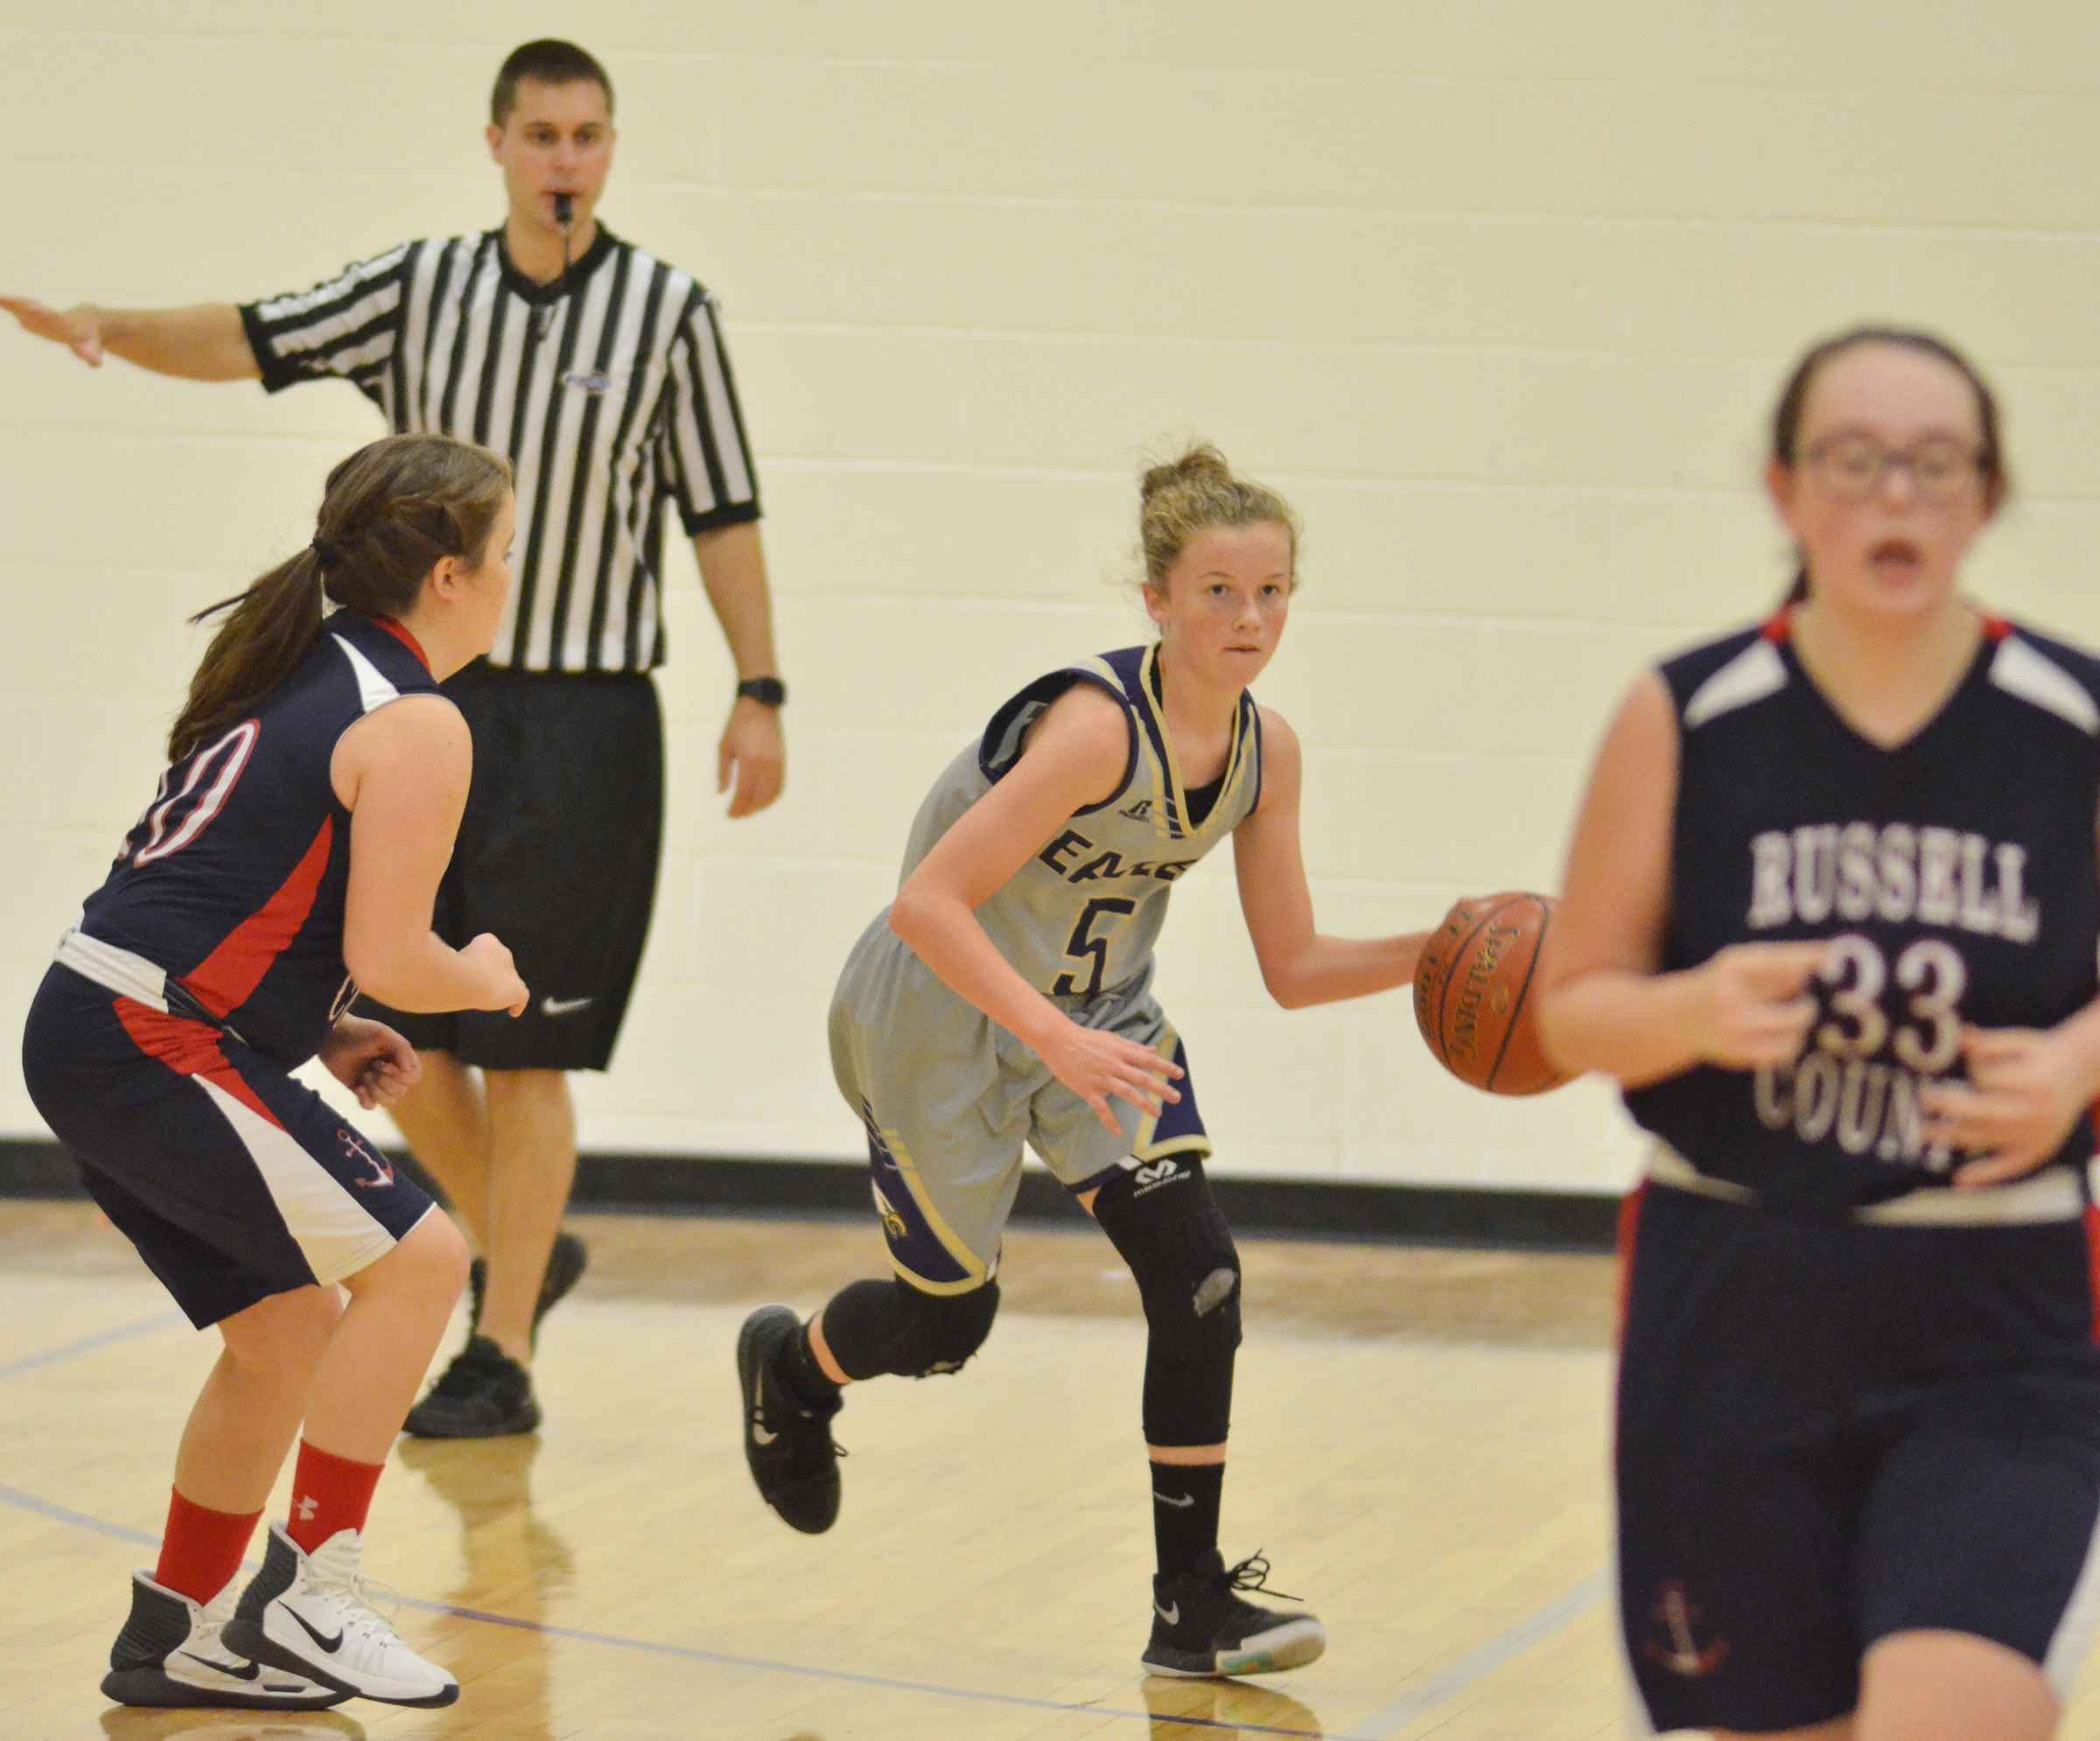 CMS seventh-grader Dakota Slone dribbles down the court.